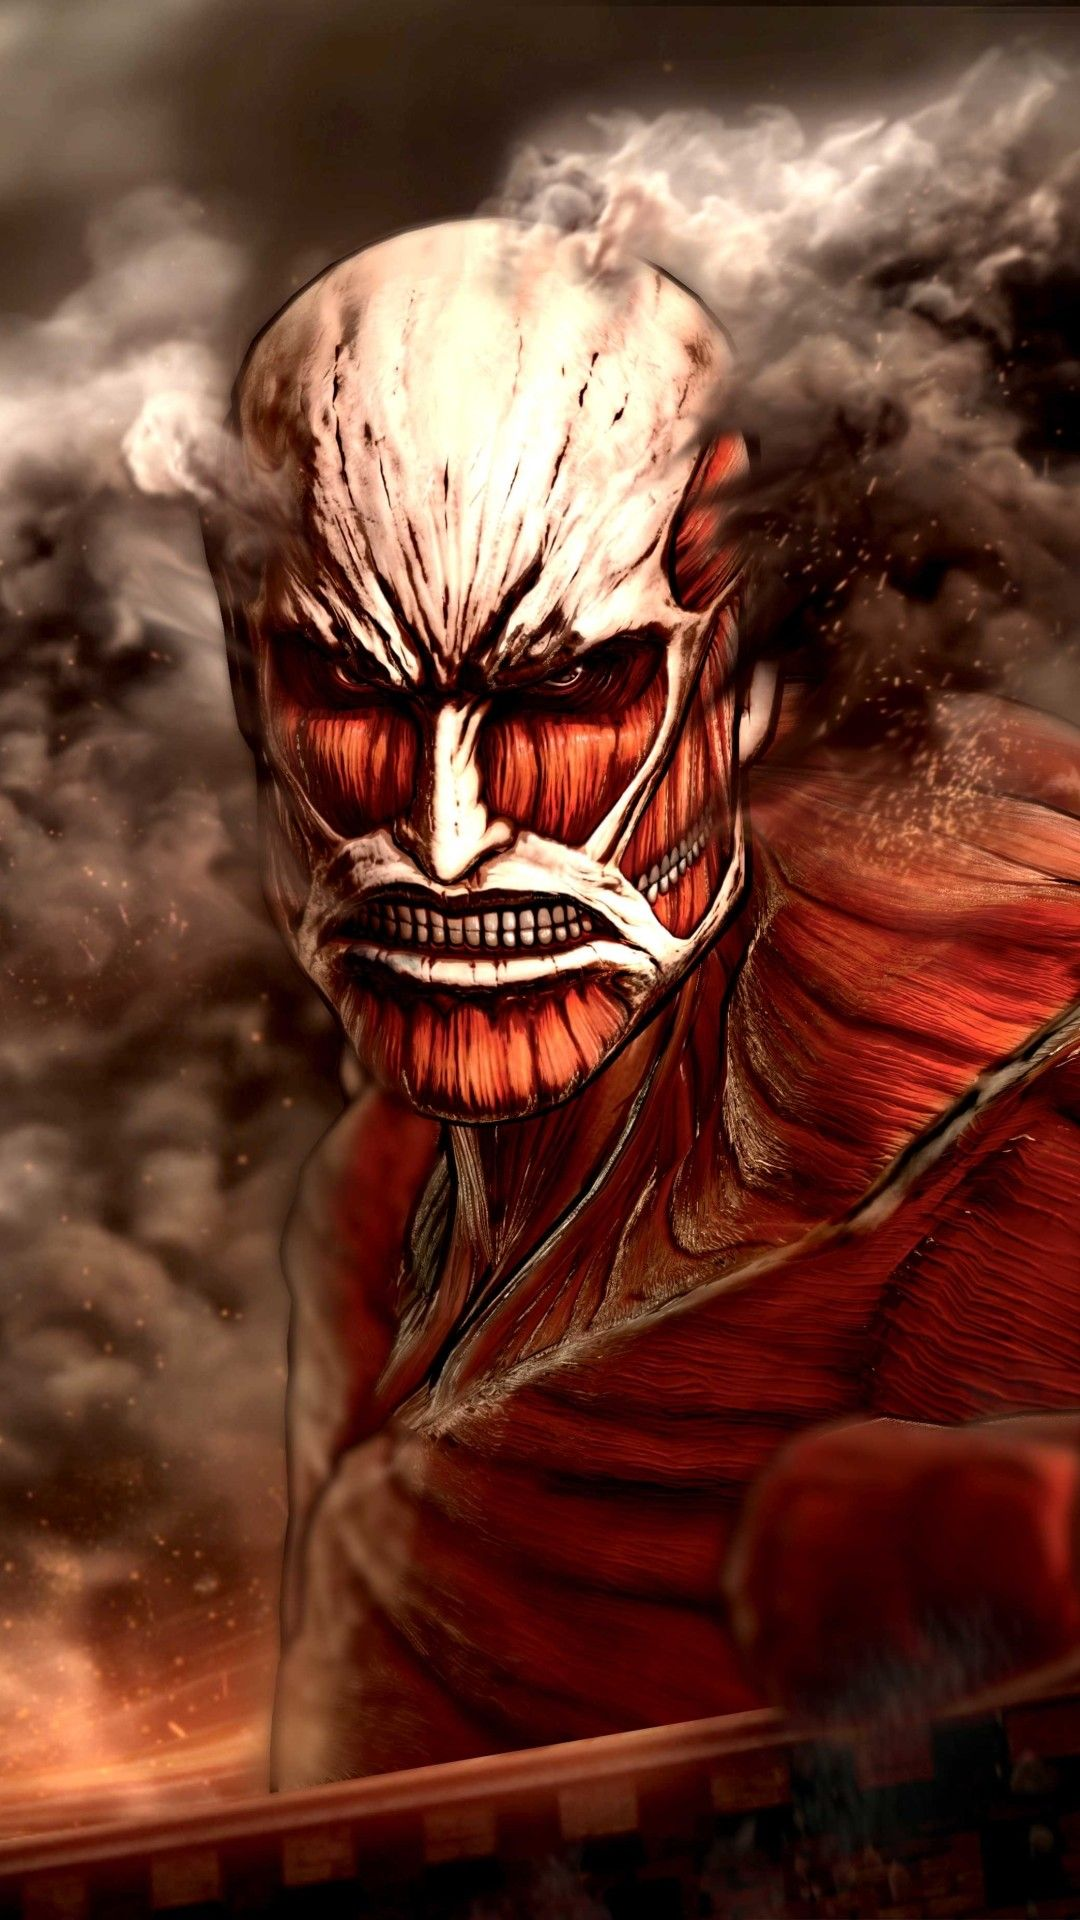 1080x1920 Wallpaper 643452 Attack On Titan Anime Attack On